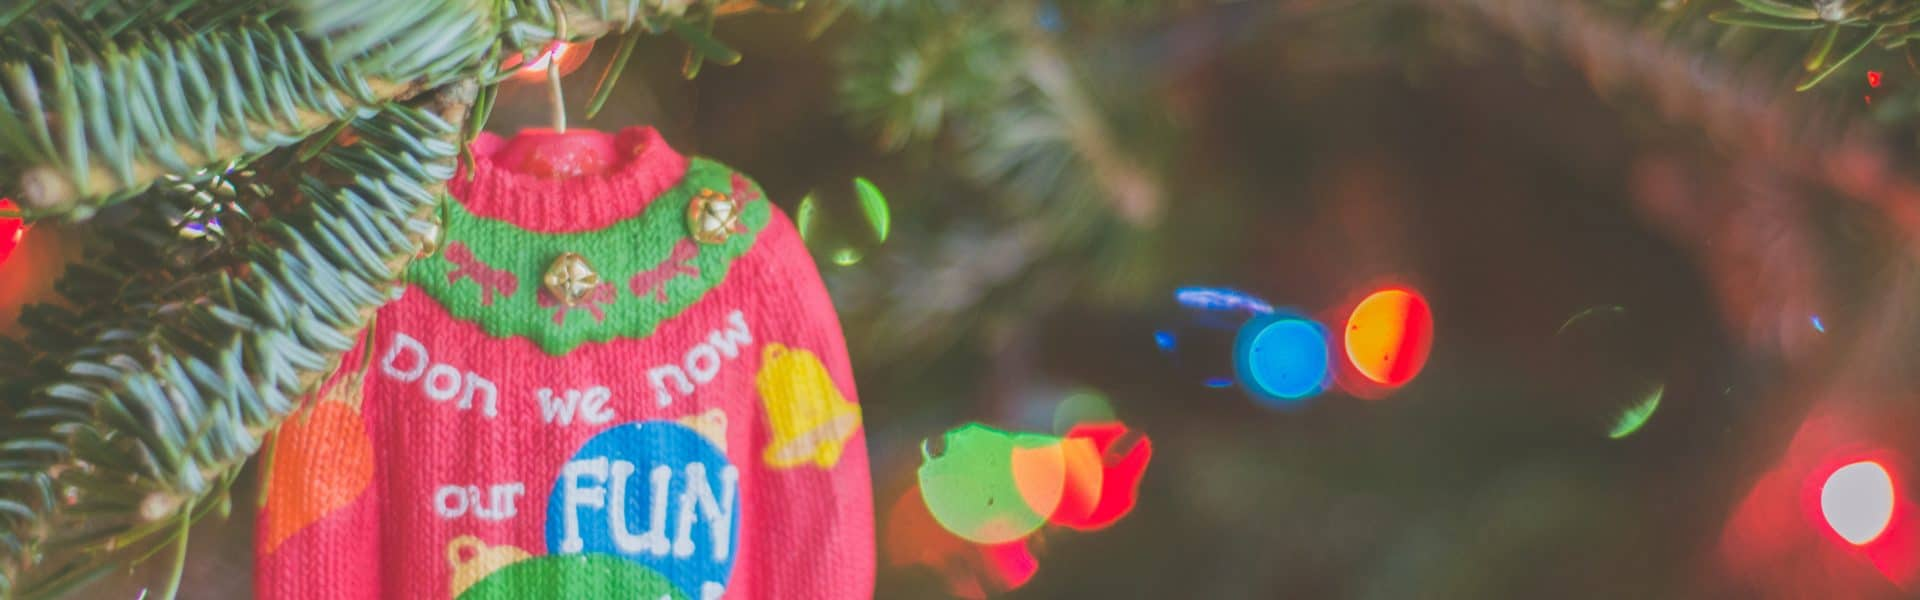 Christmas sweater ornament image for Inn at Laurel Point Celebrate the Holidays Package